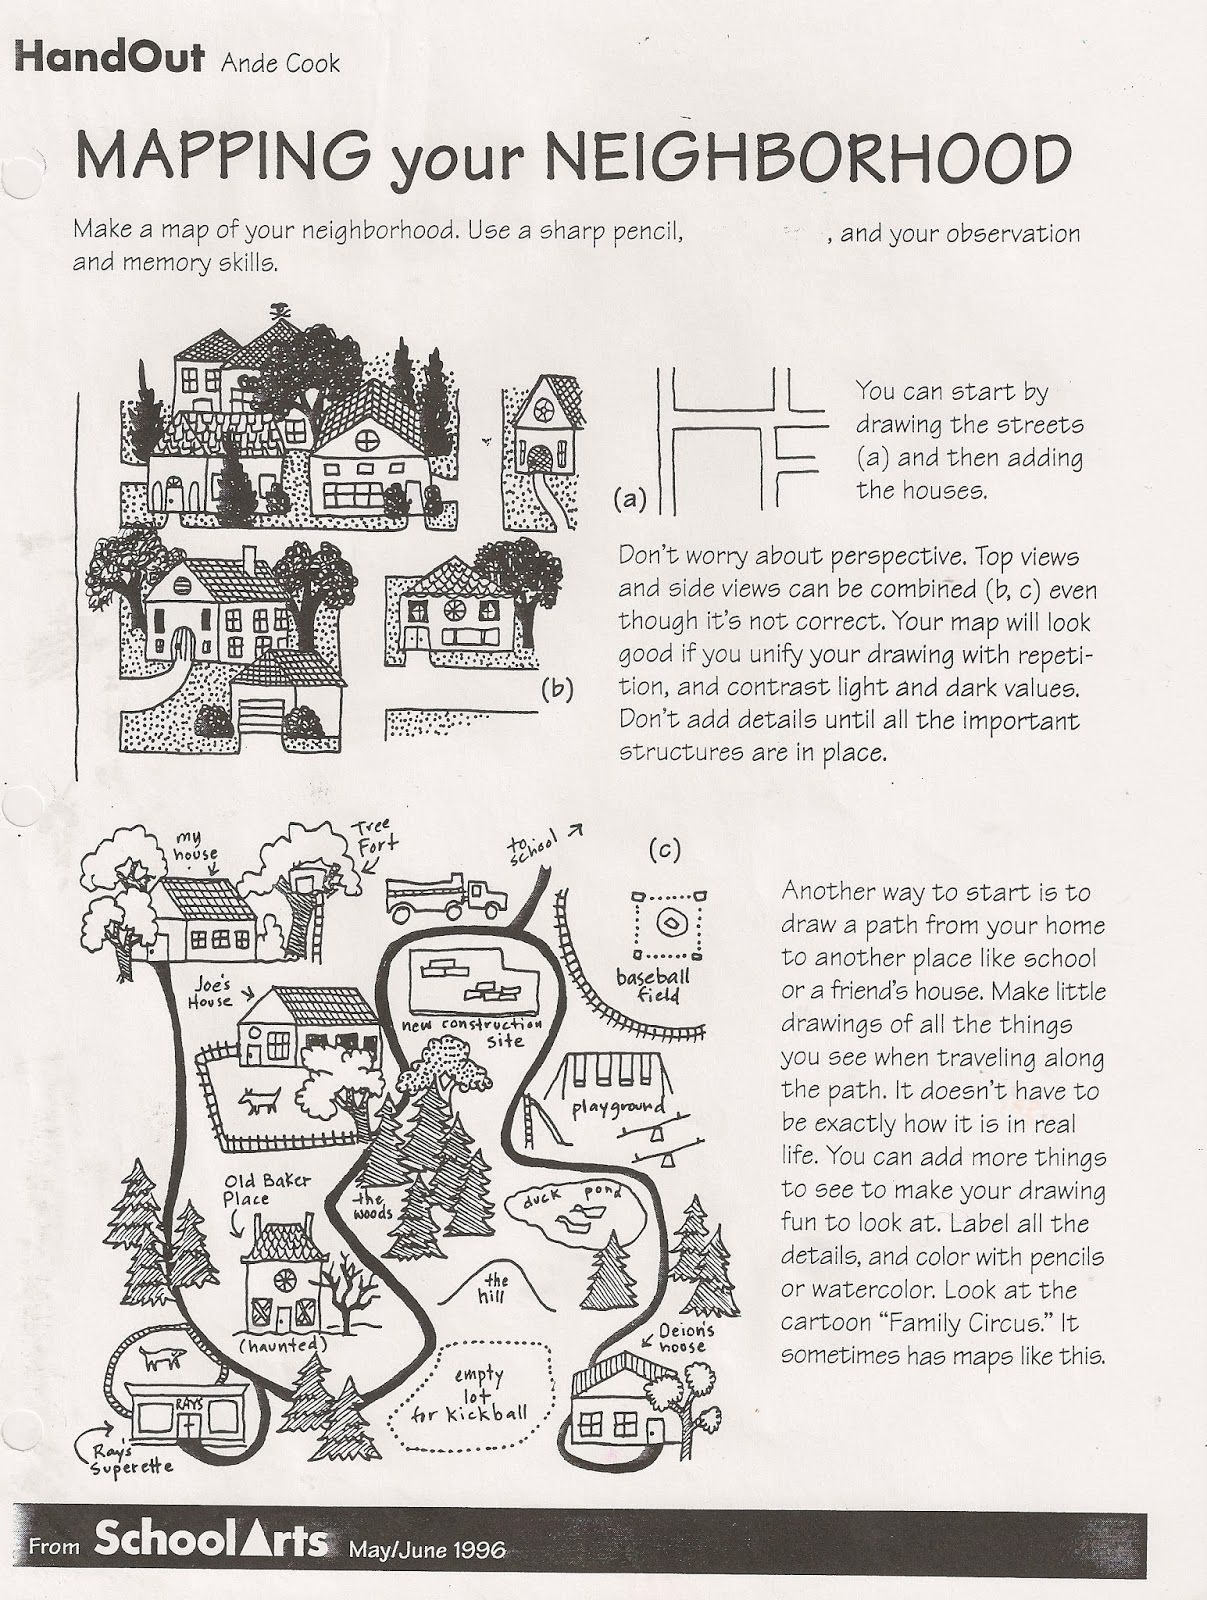 Free Ande Cook S Mapping Your Neighborhood Handout And Complete Substitute Art Lesson